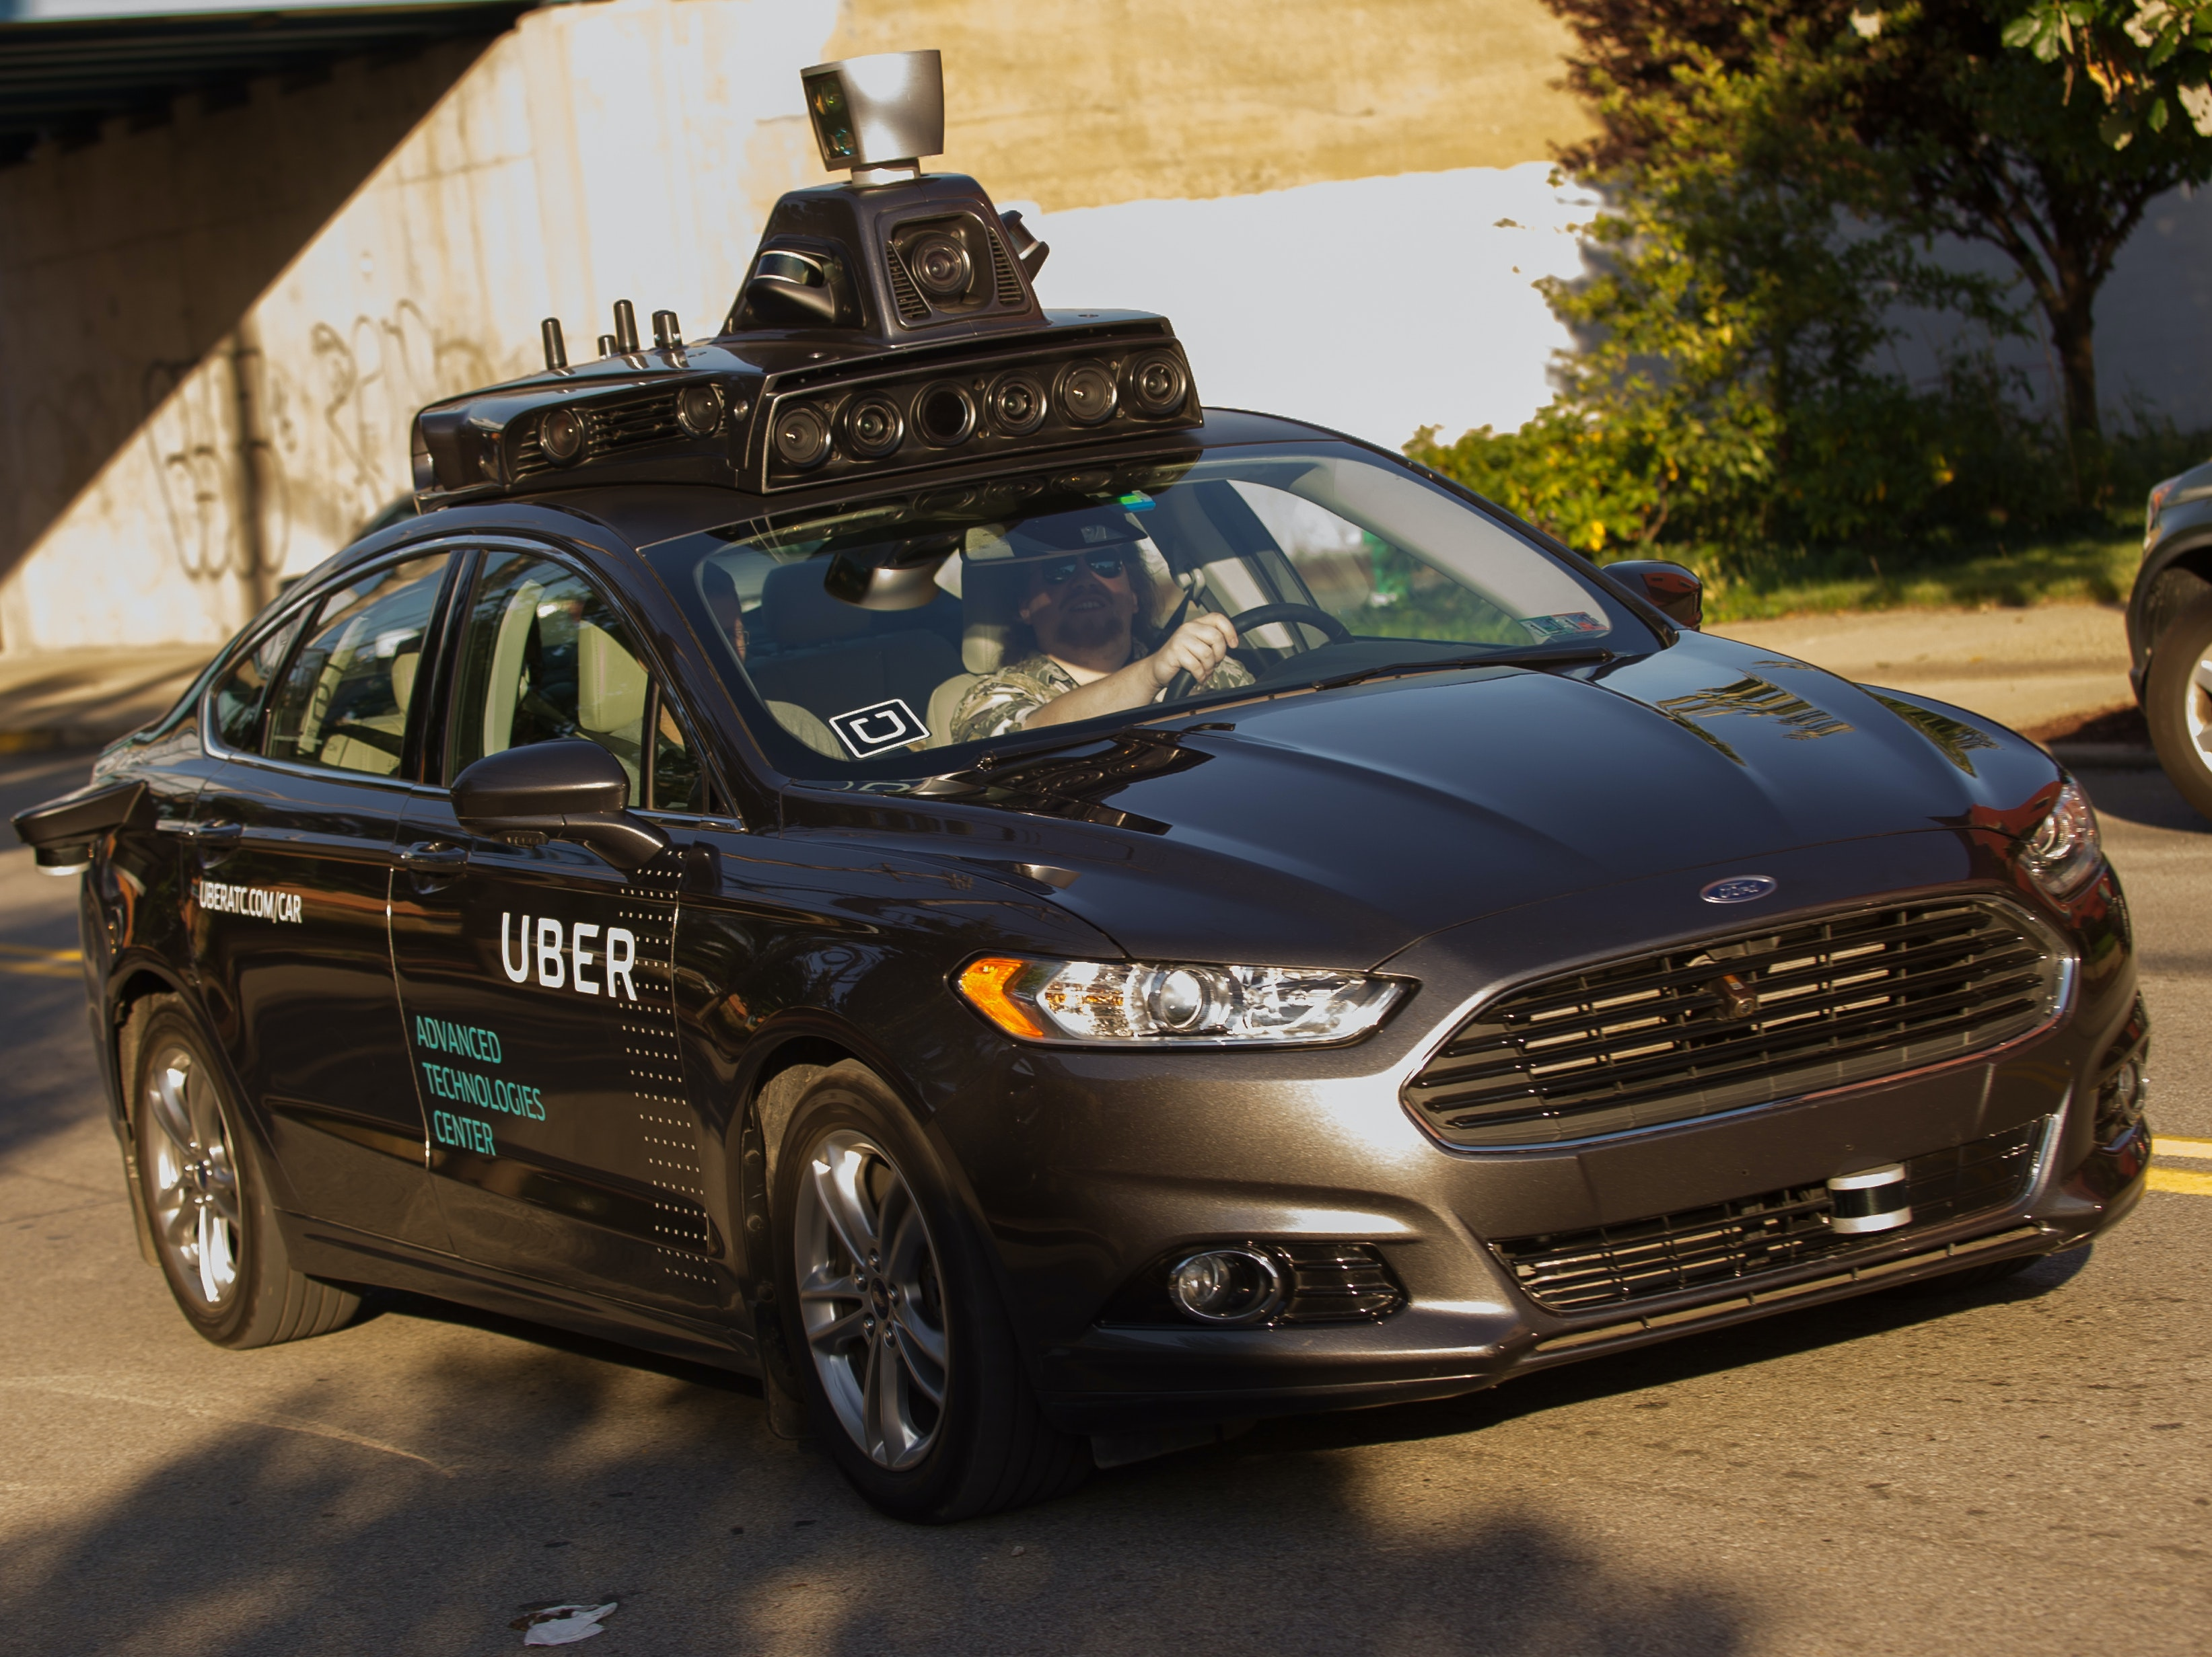 The Department of Transportation announced a new Federal Committee on Automation, which includes executives from Uber and Hyperloop One, as well as other experts and professionals.